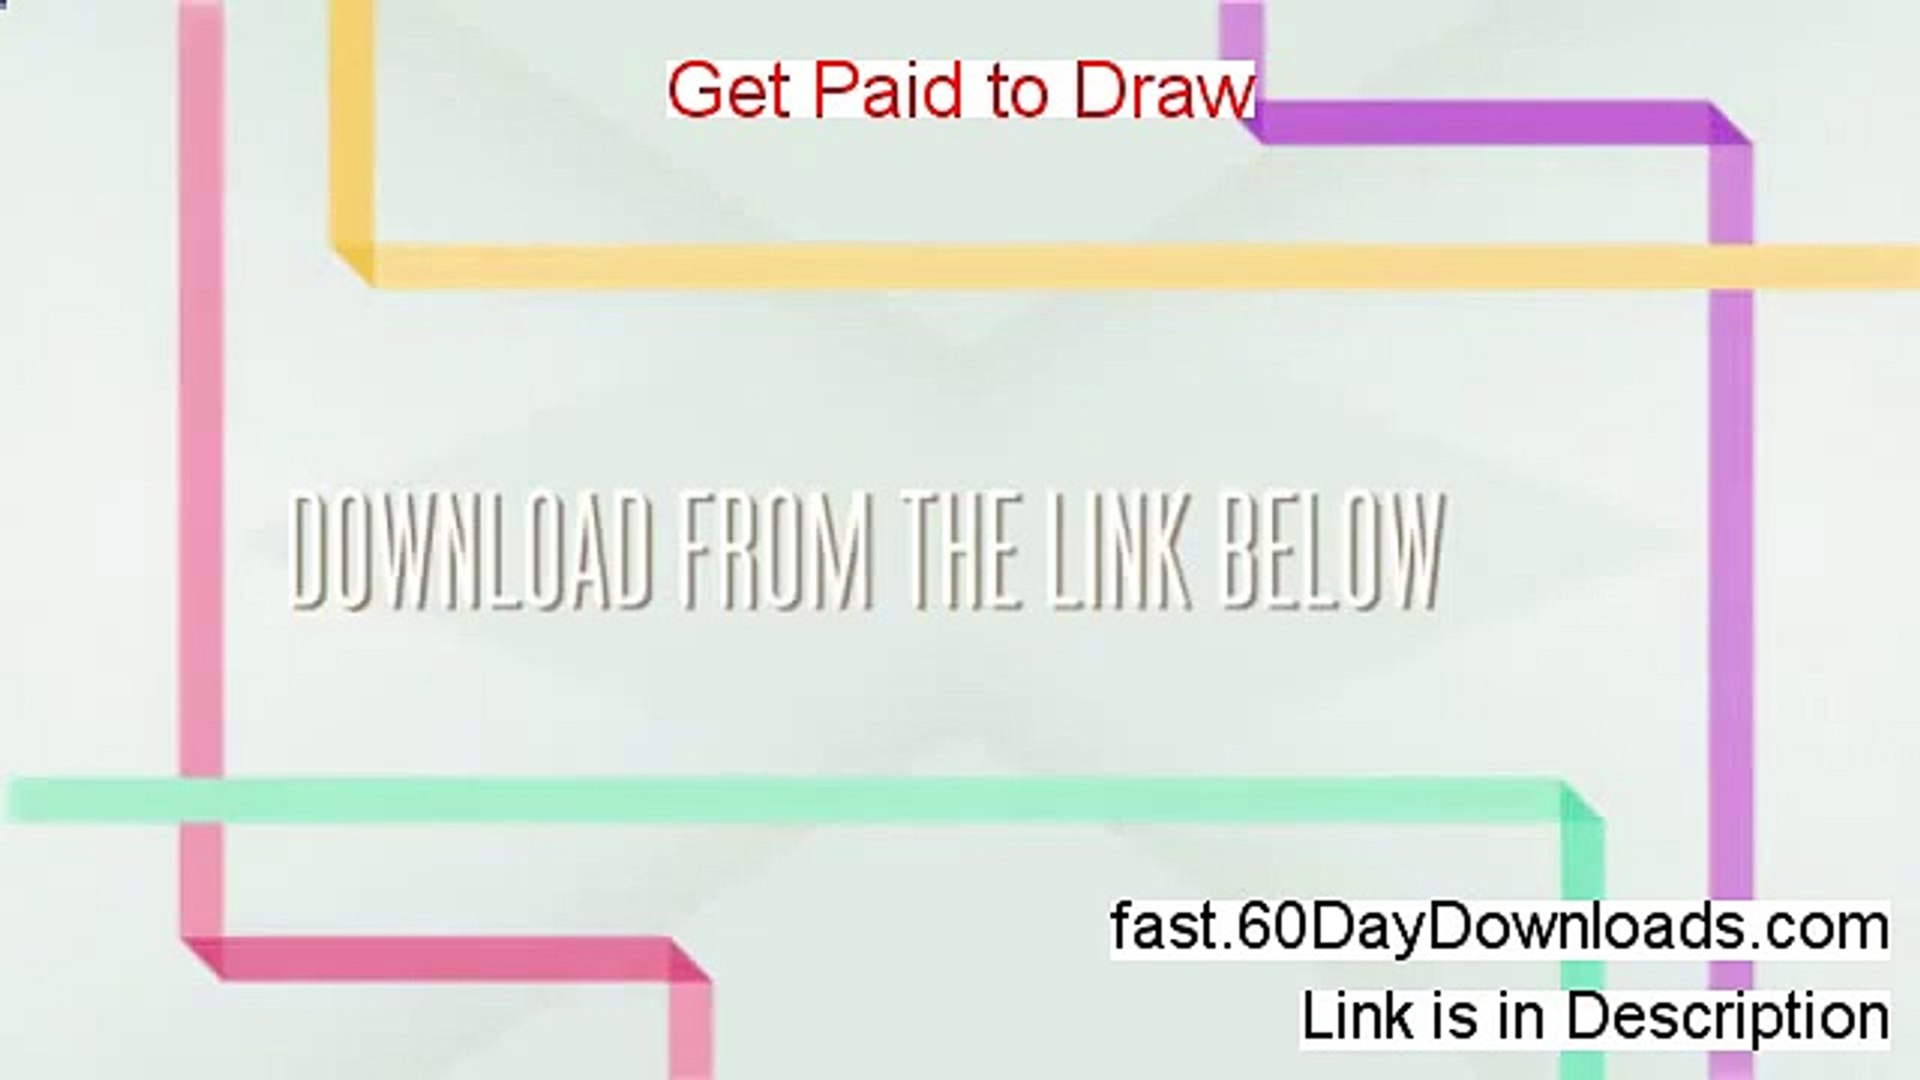 Get Paid To Draw Review - Get Paid To Draw